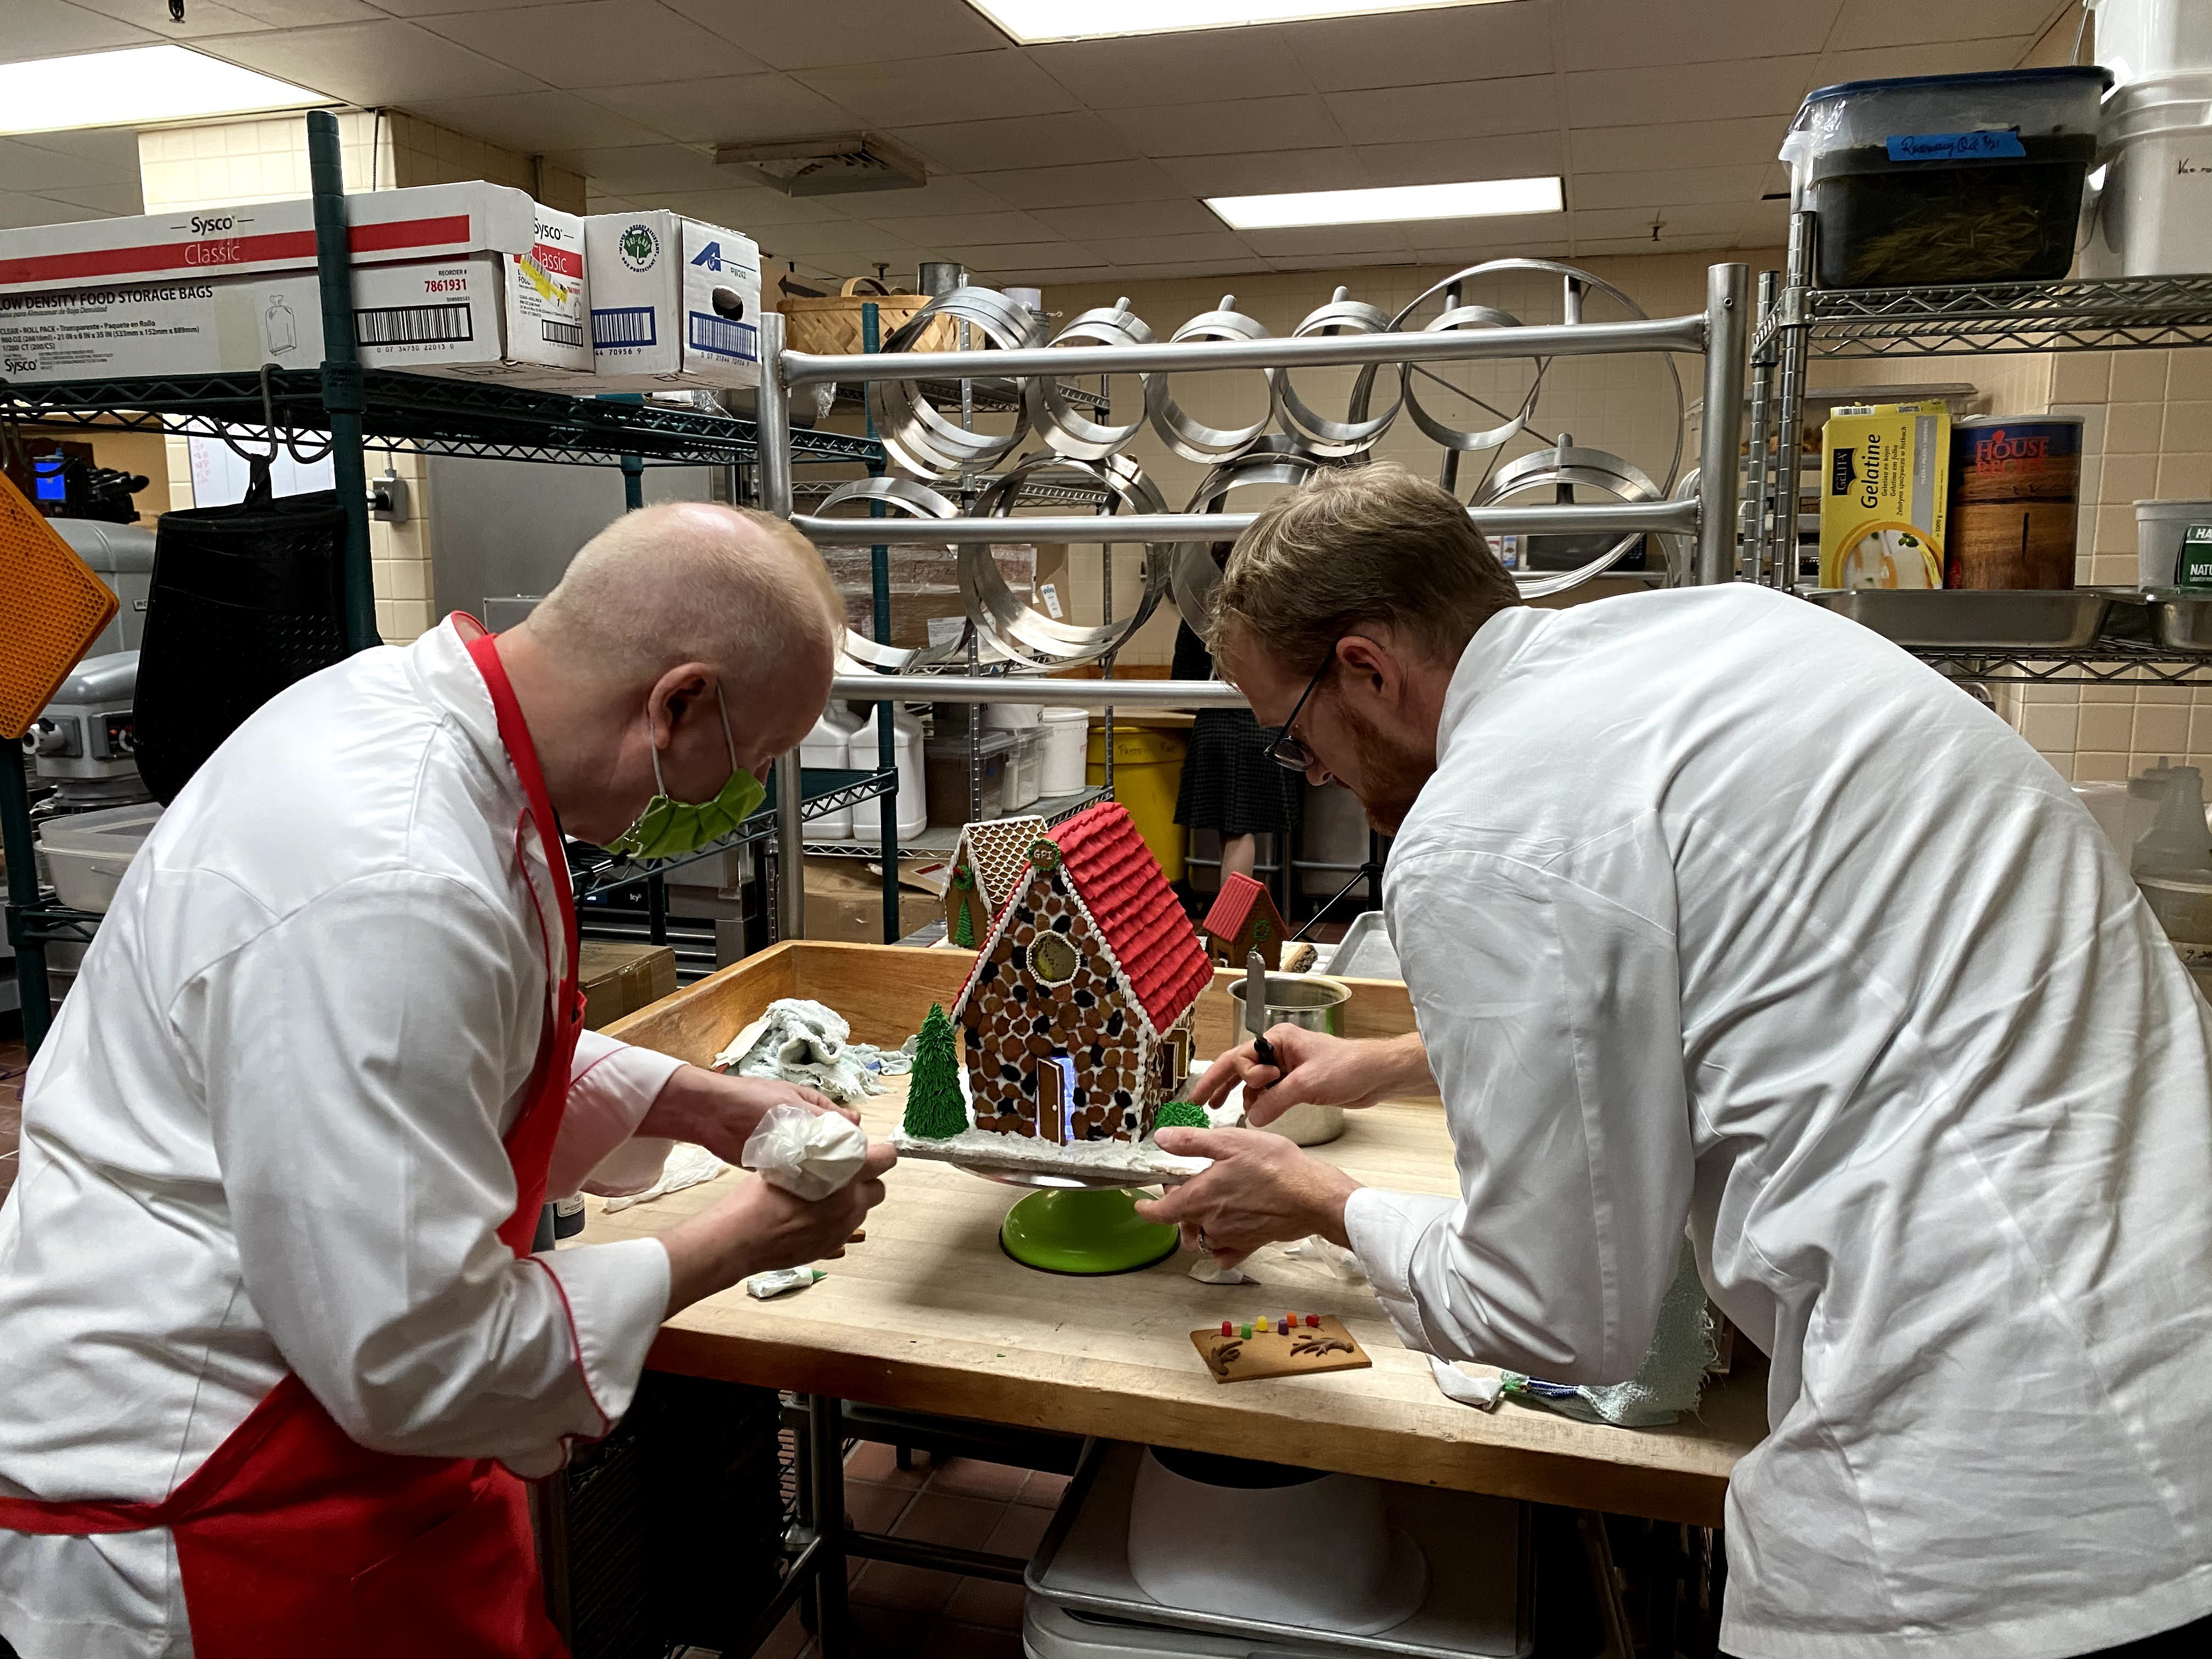 Chefs making a gingerbread house during Baking Spirits Bright with The Omni Grove Park Inn | Photo provided